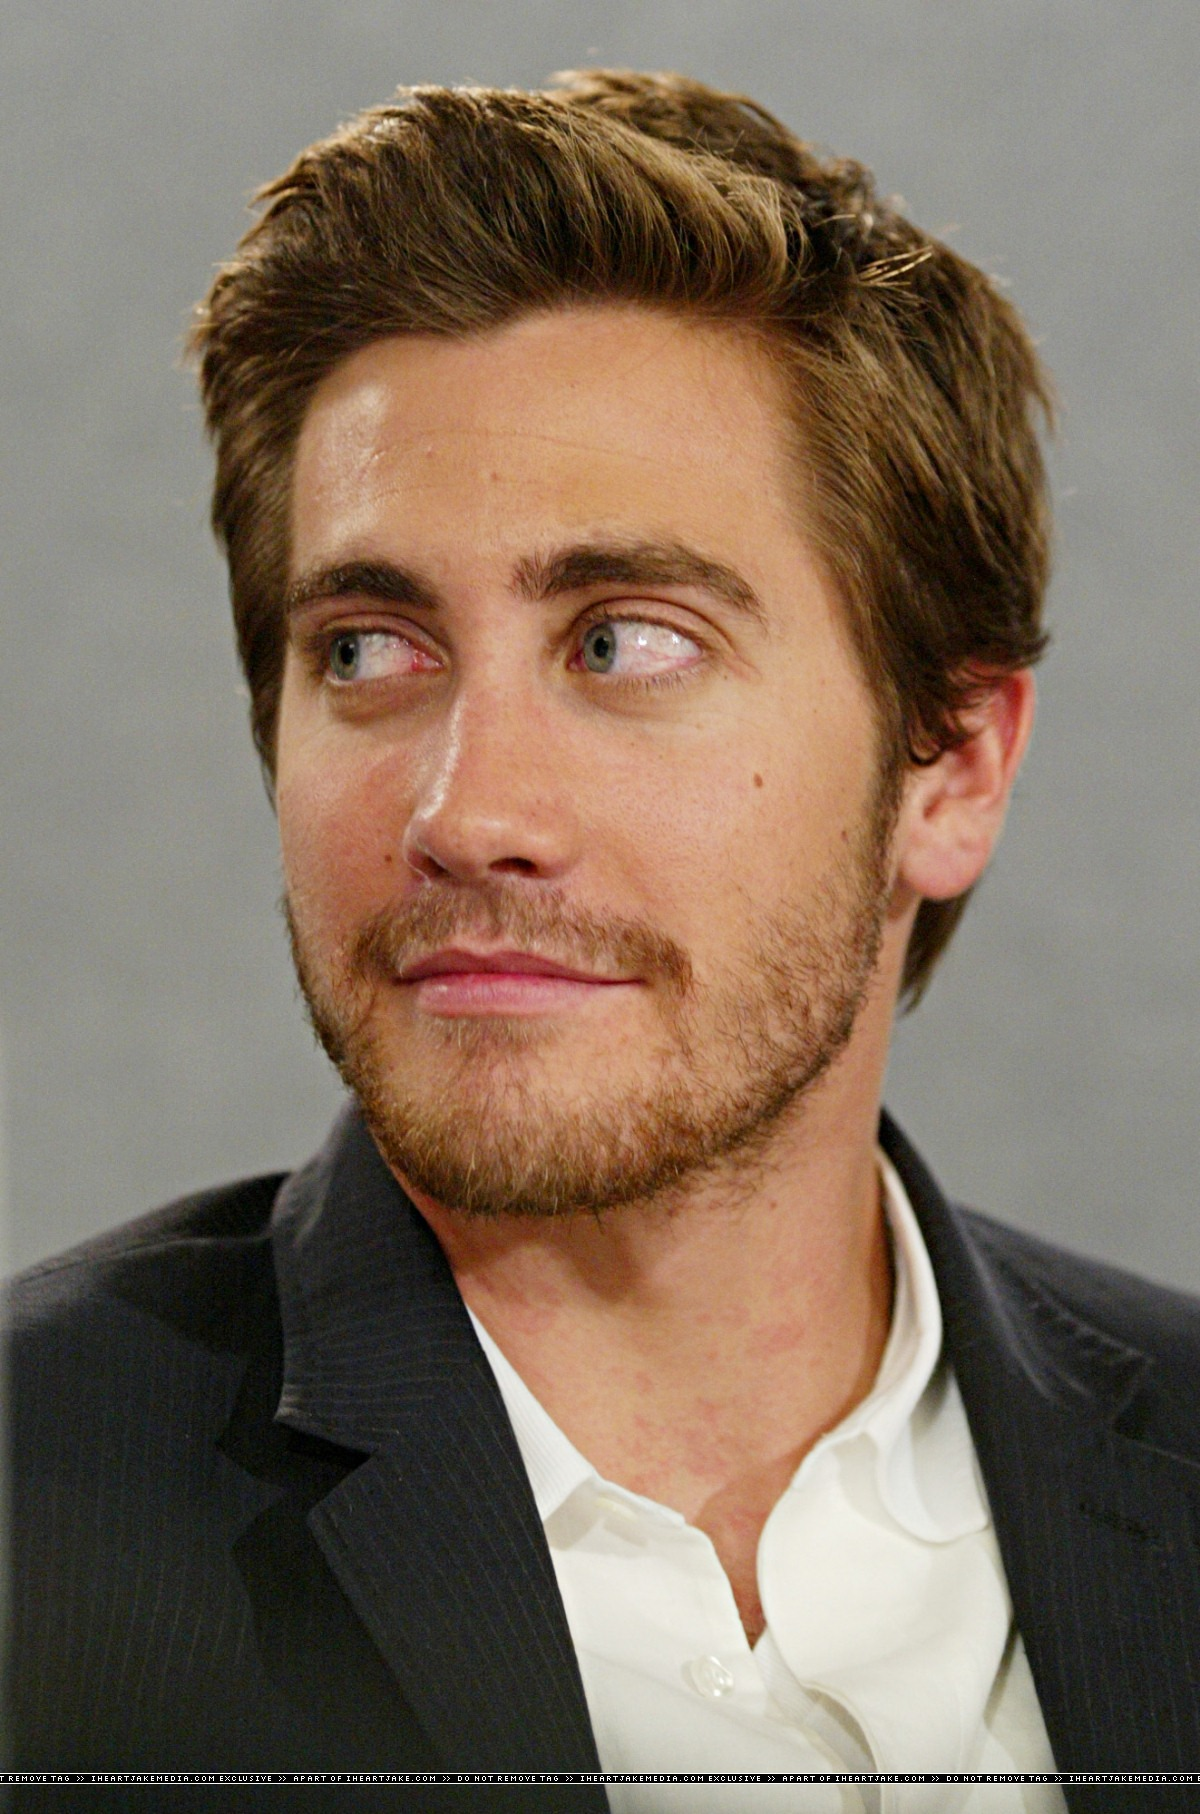 Jake Gyllenhaal images Jake Gyllenhaal HD wallpaper and background ... Jake Gyllenhaal